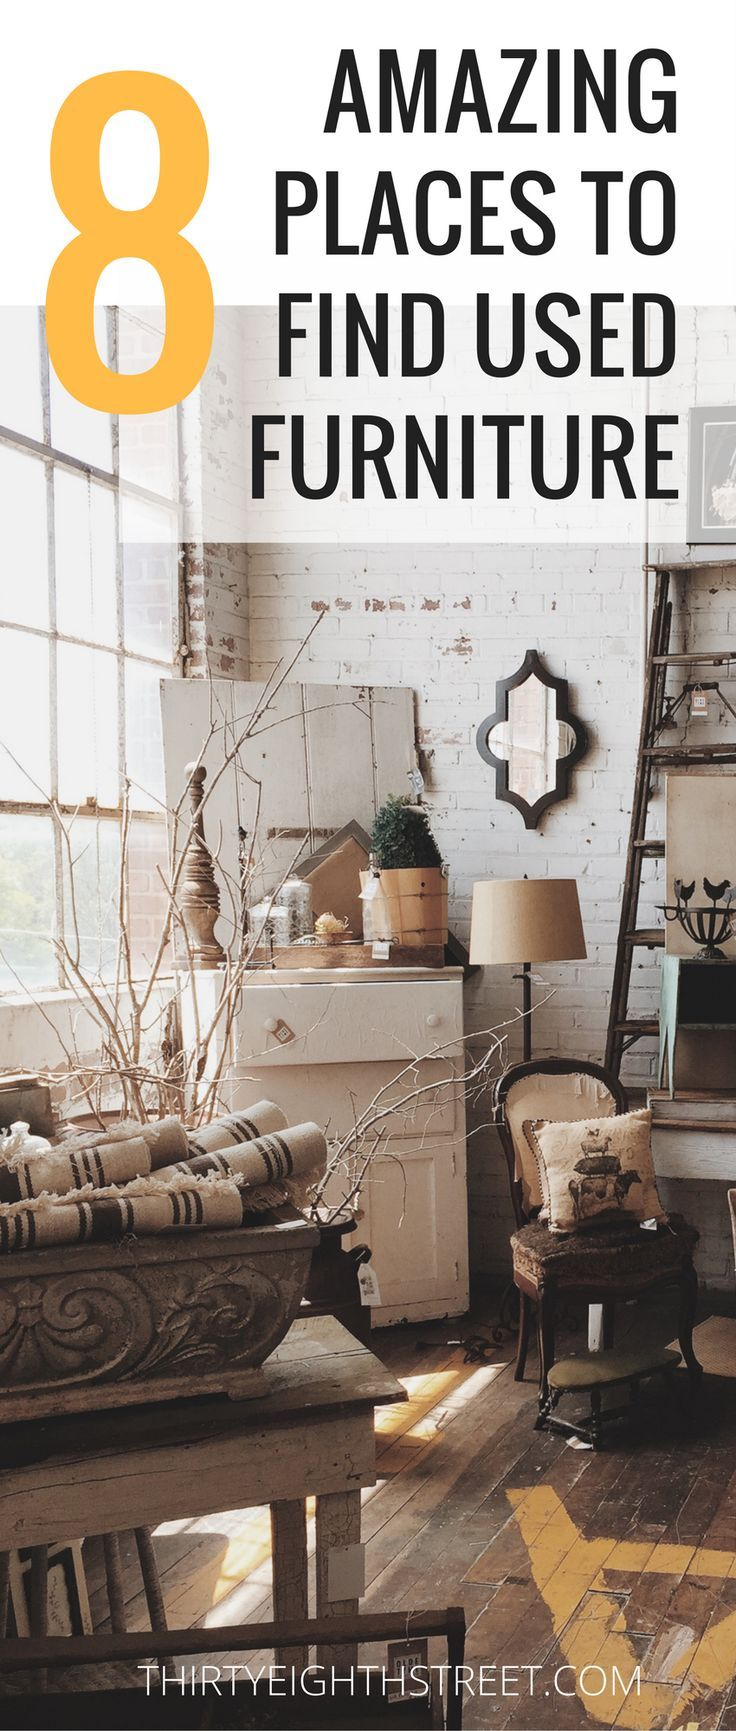 The Best Places To Find And Used Second Hand Furniture Diyhomedecor